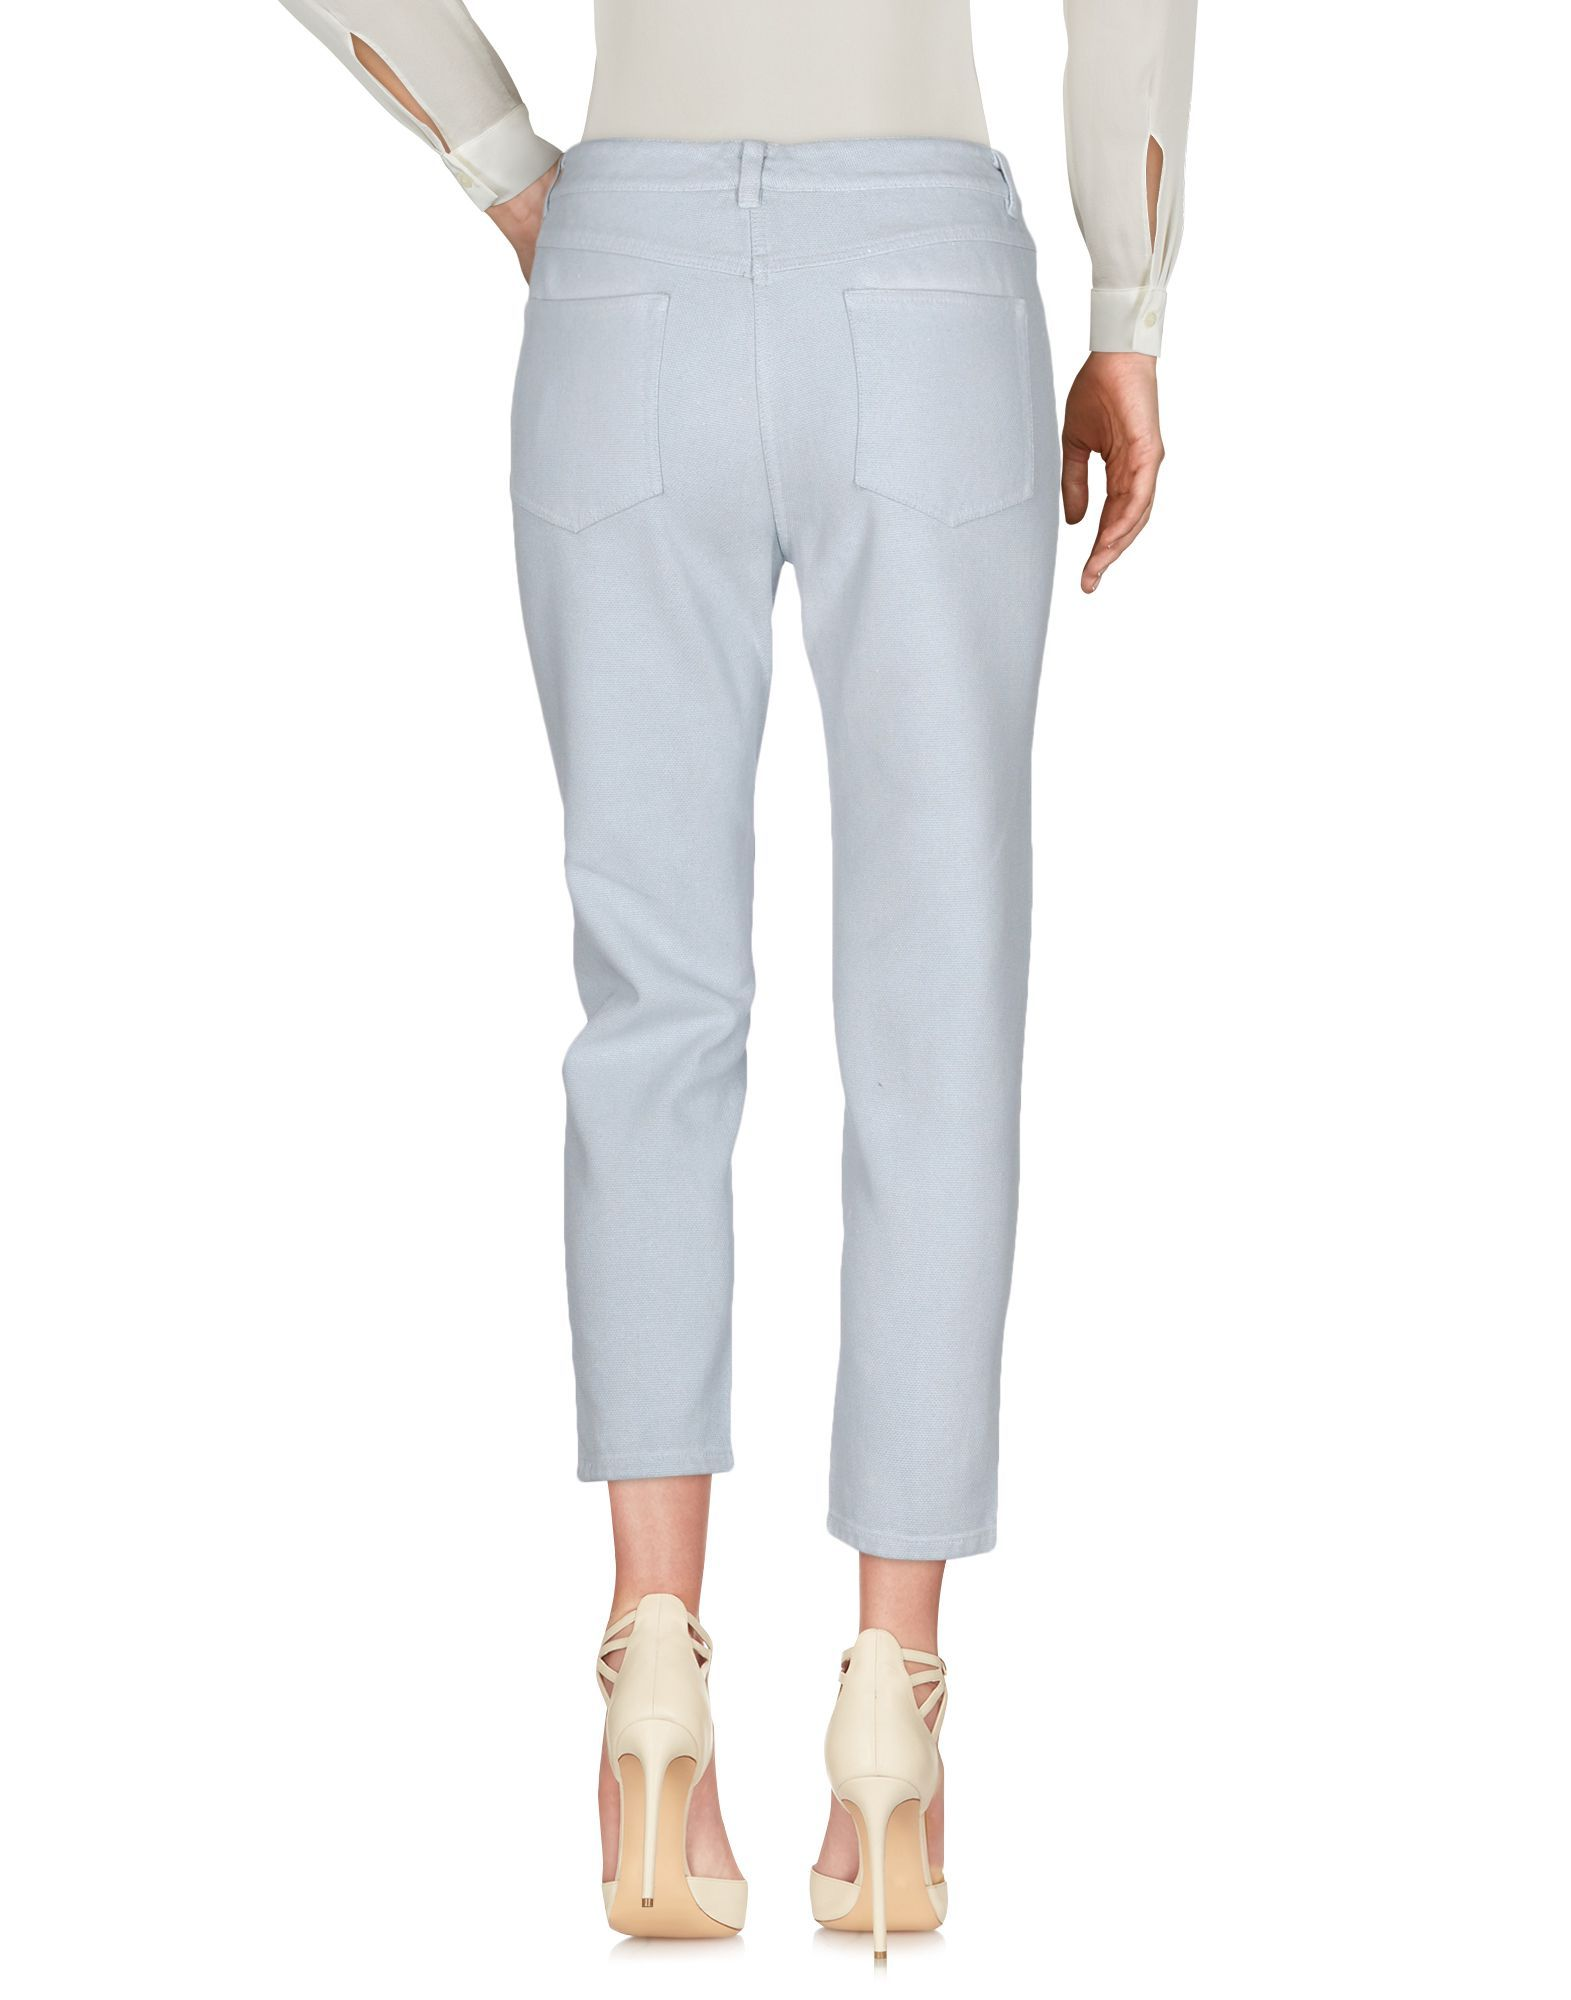 3.1 Phillip Lim Sky Blue Cotton Tapered Leg Trousers